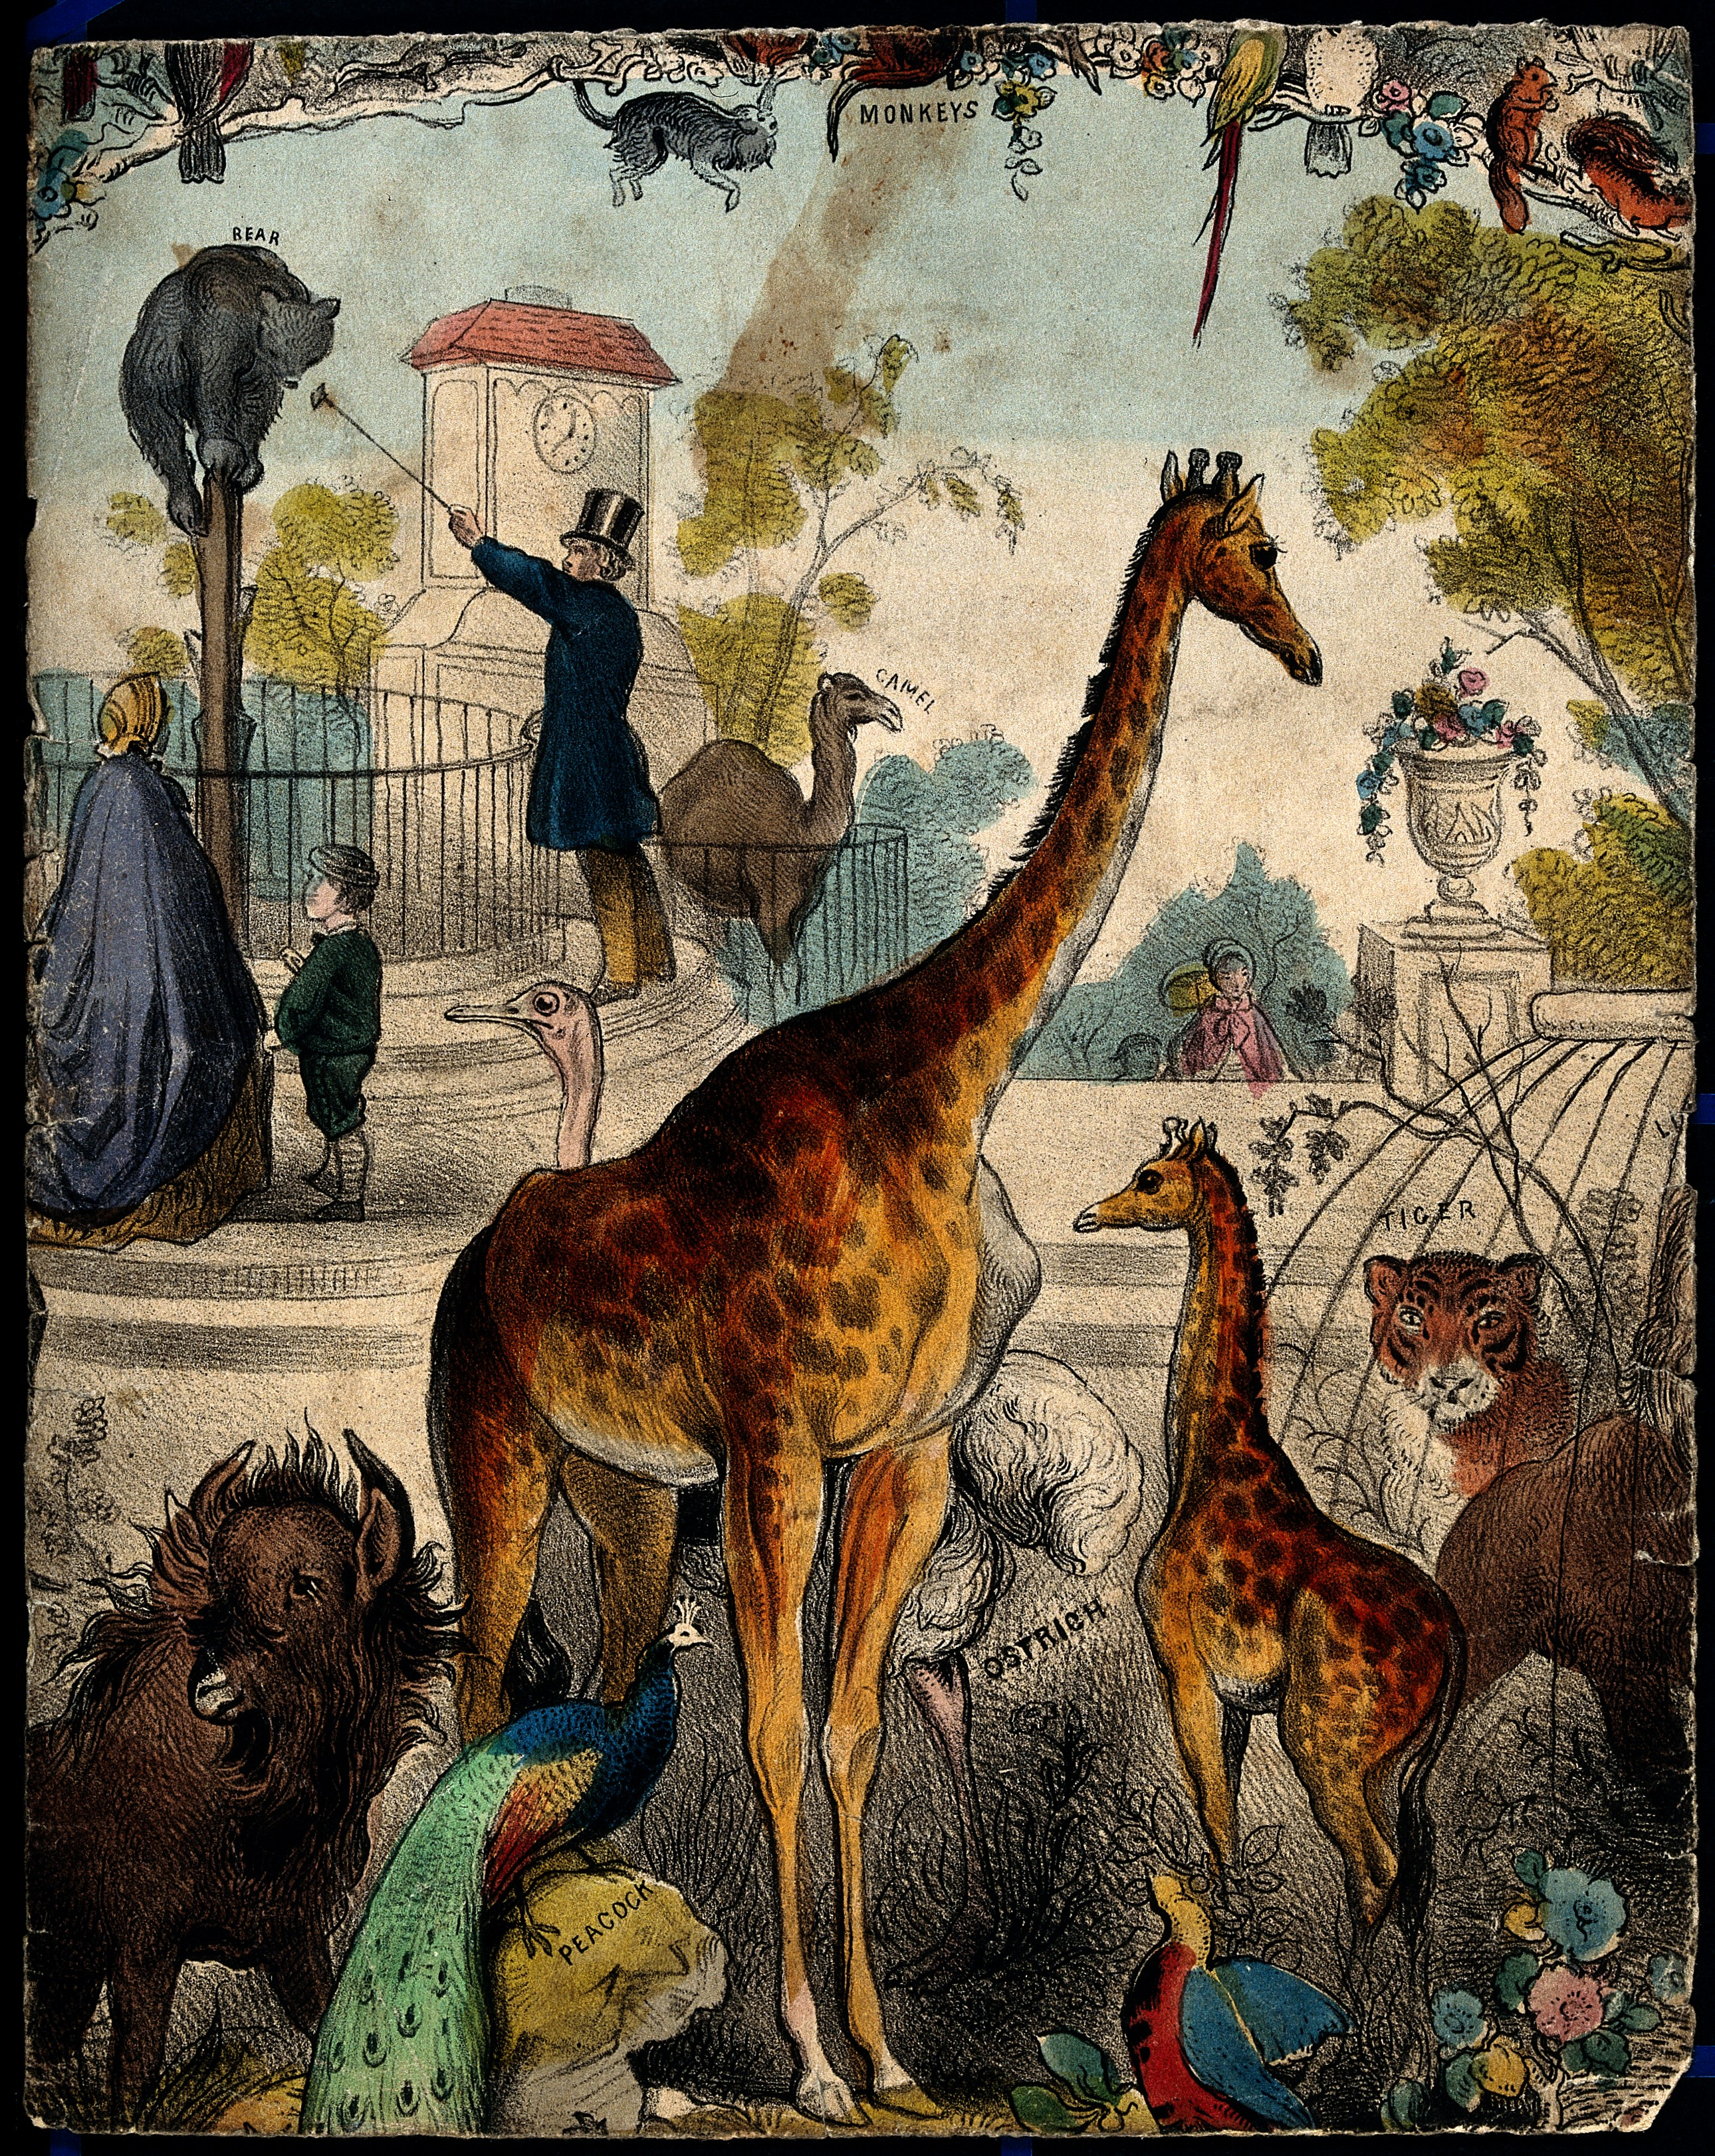 V0023154 A zoo with giraffes, tigers, and a peacock. Coloured lithogr